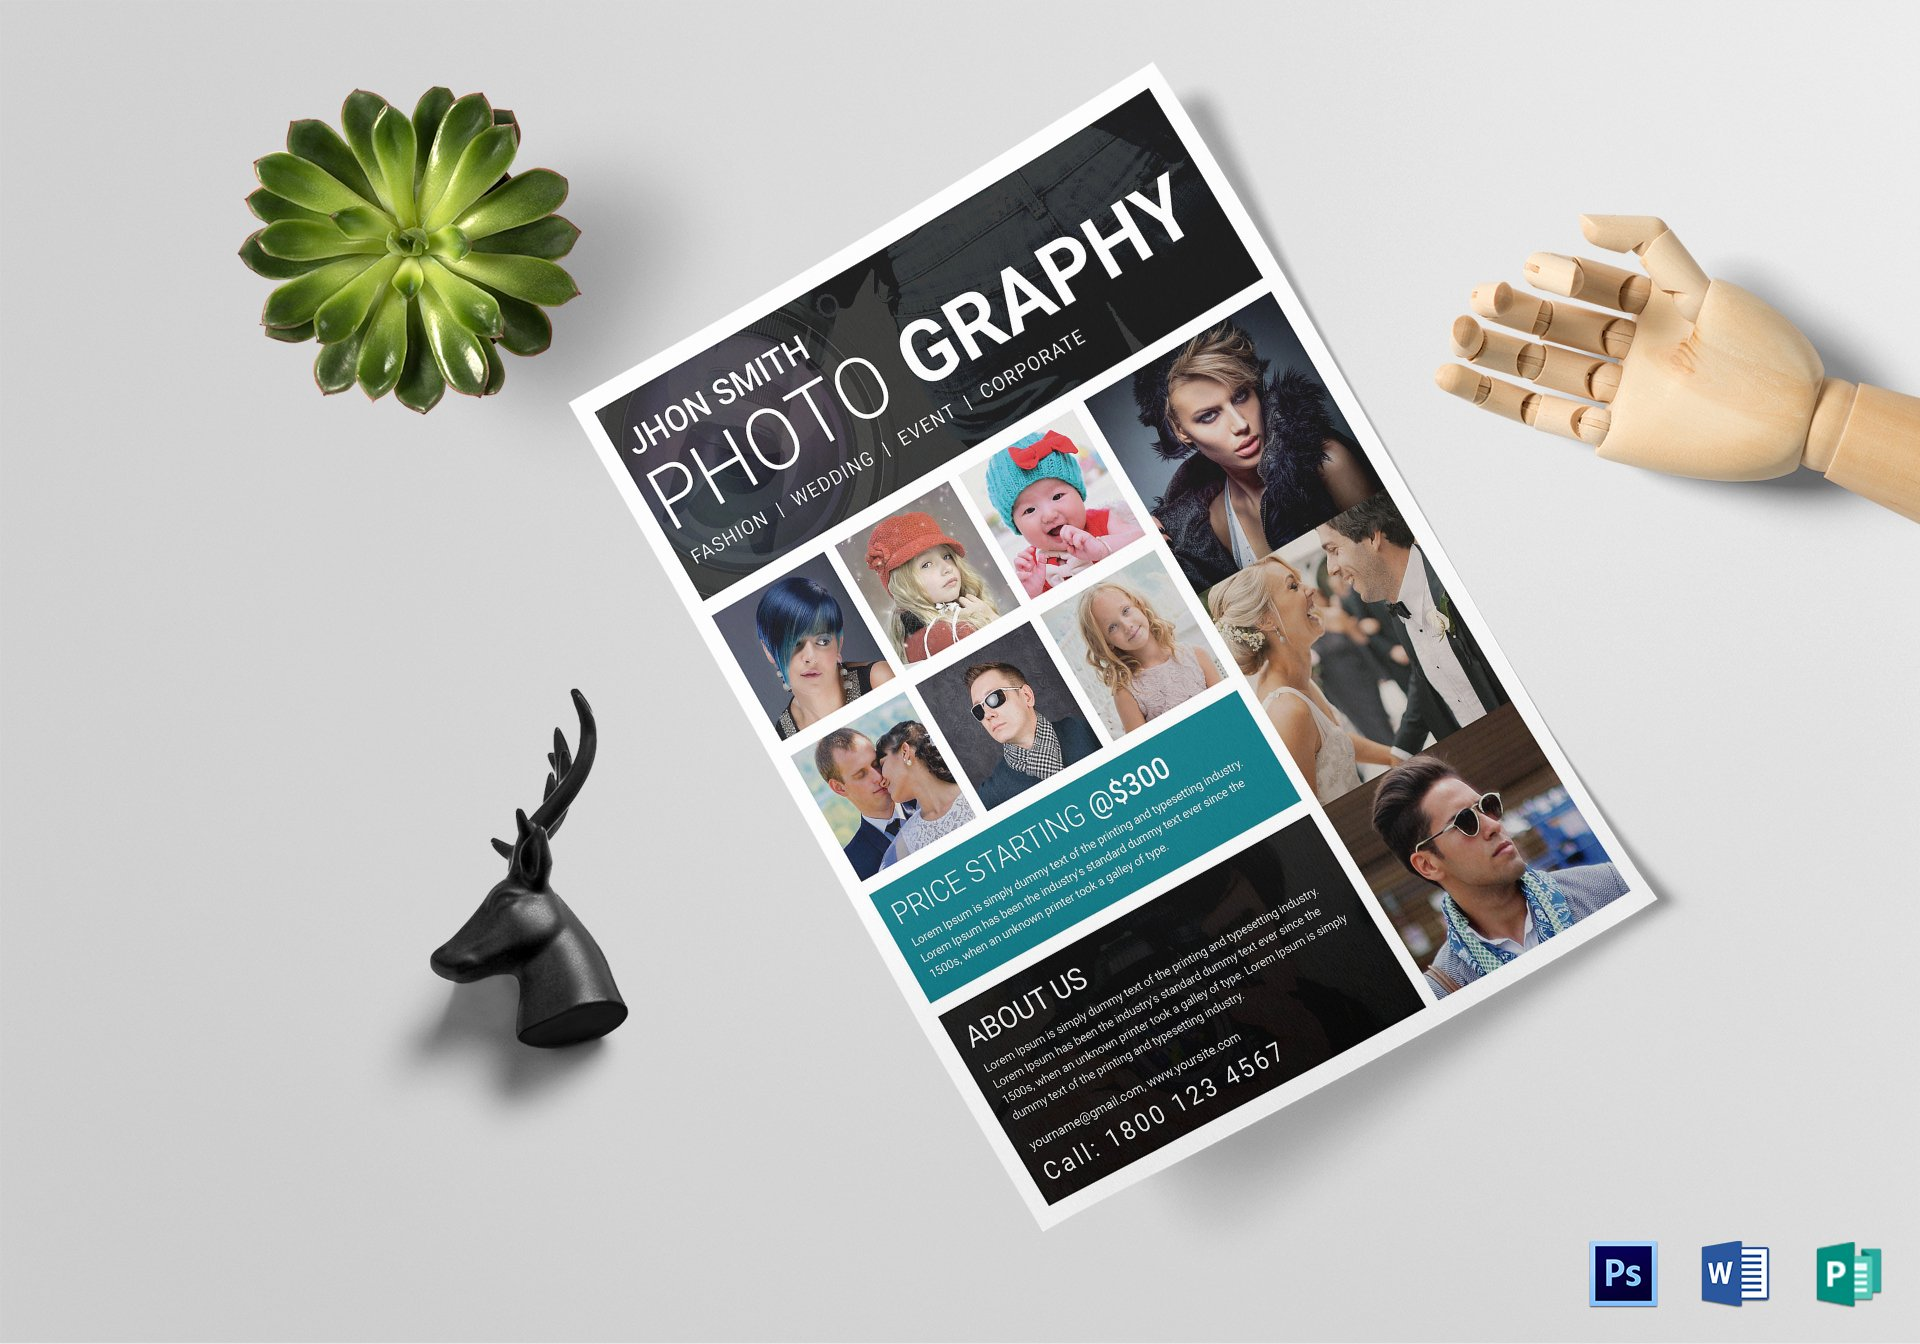 Photography Flyer Template Free New Modern Graphy Flyer Design Template In Word Psd